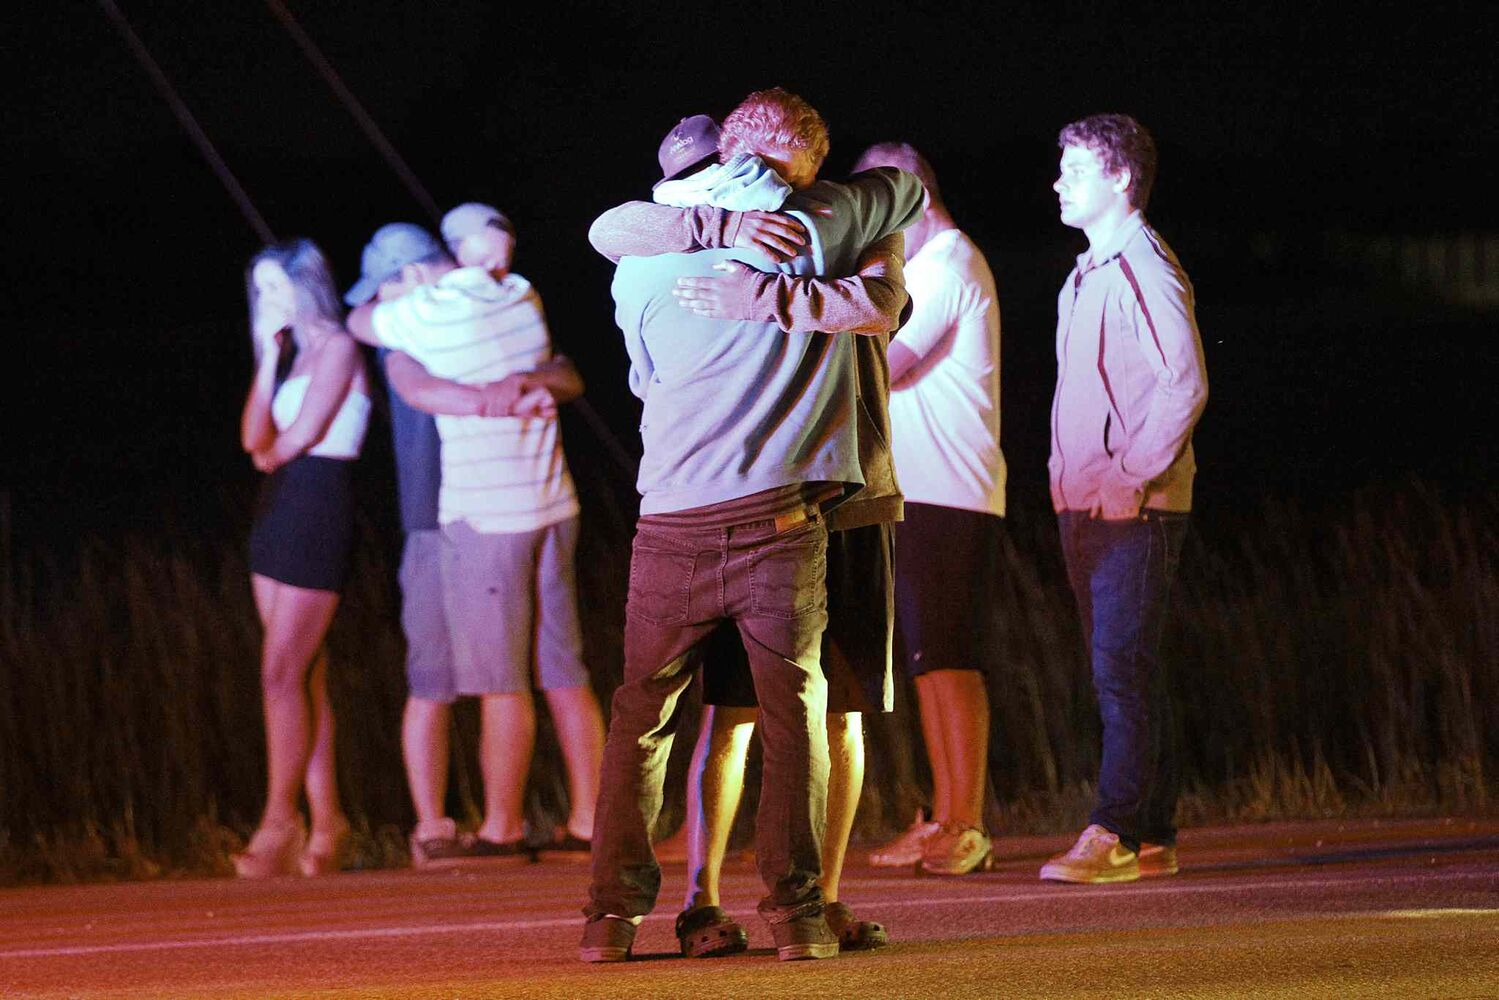 People comfort each other at the scene of a head-on collision between a pickup truck and a semi on the Trans Canada in Headingley July 22, 2013. The male driver of the pickup died at the scene.